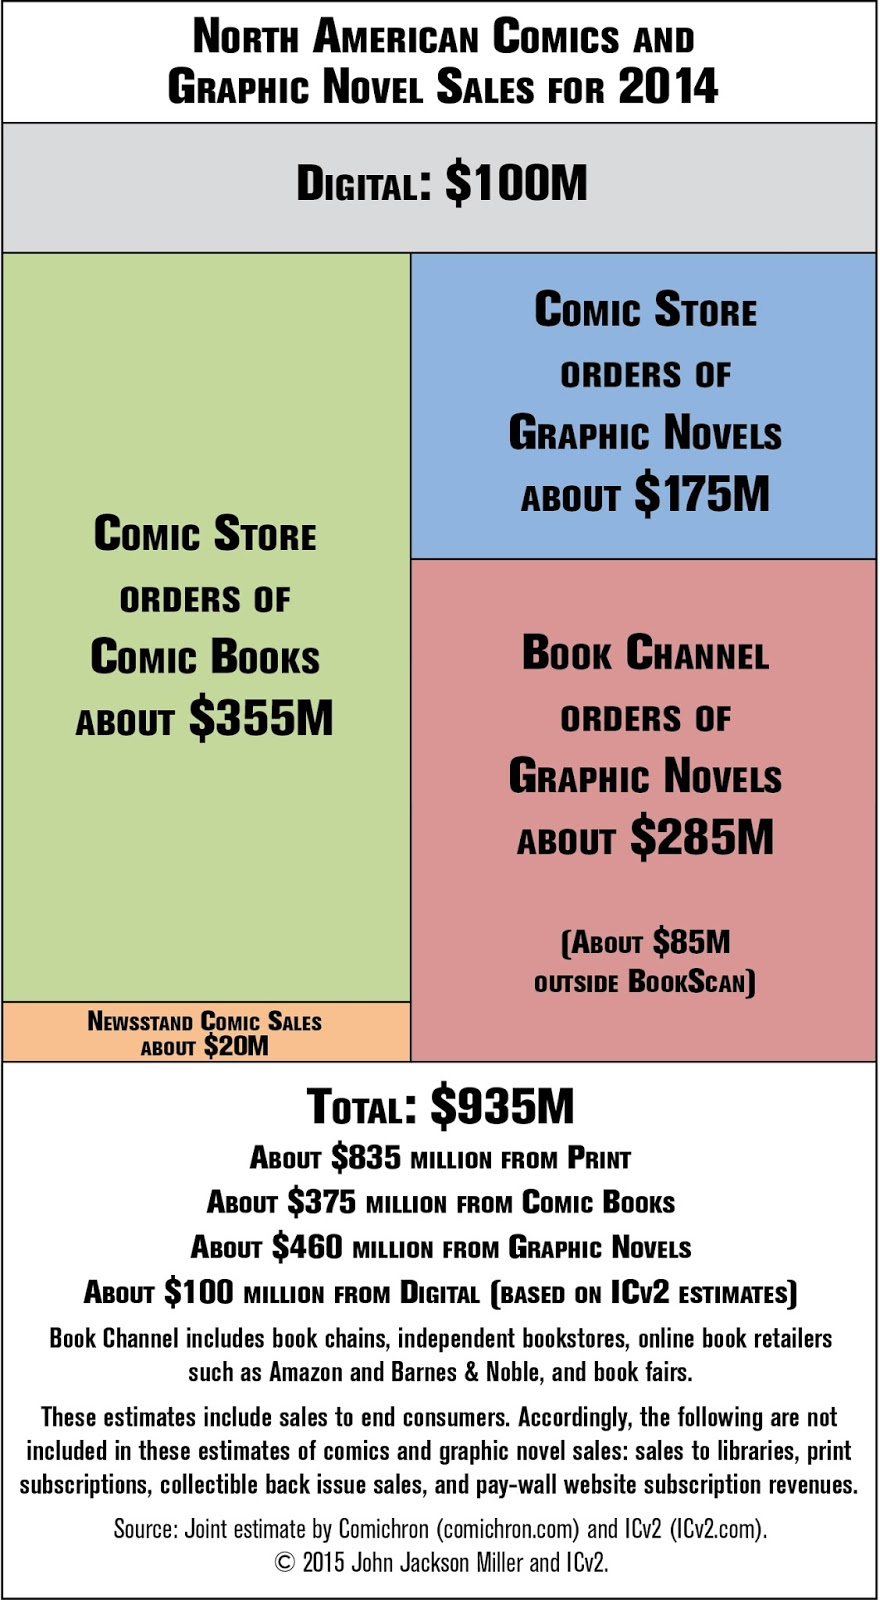 Fromhttp://blog.comichron.com/2015/06/comics-and-graphic-novel-sales-hit-new.html